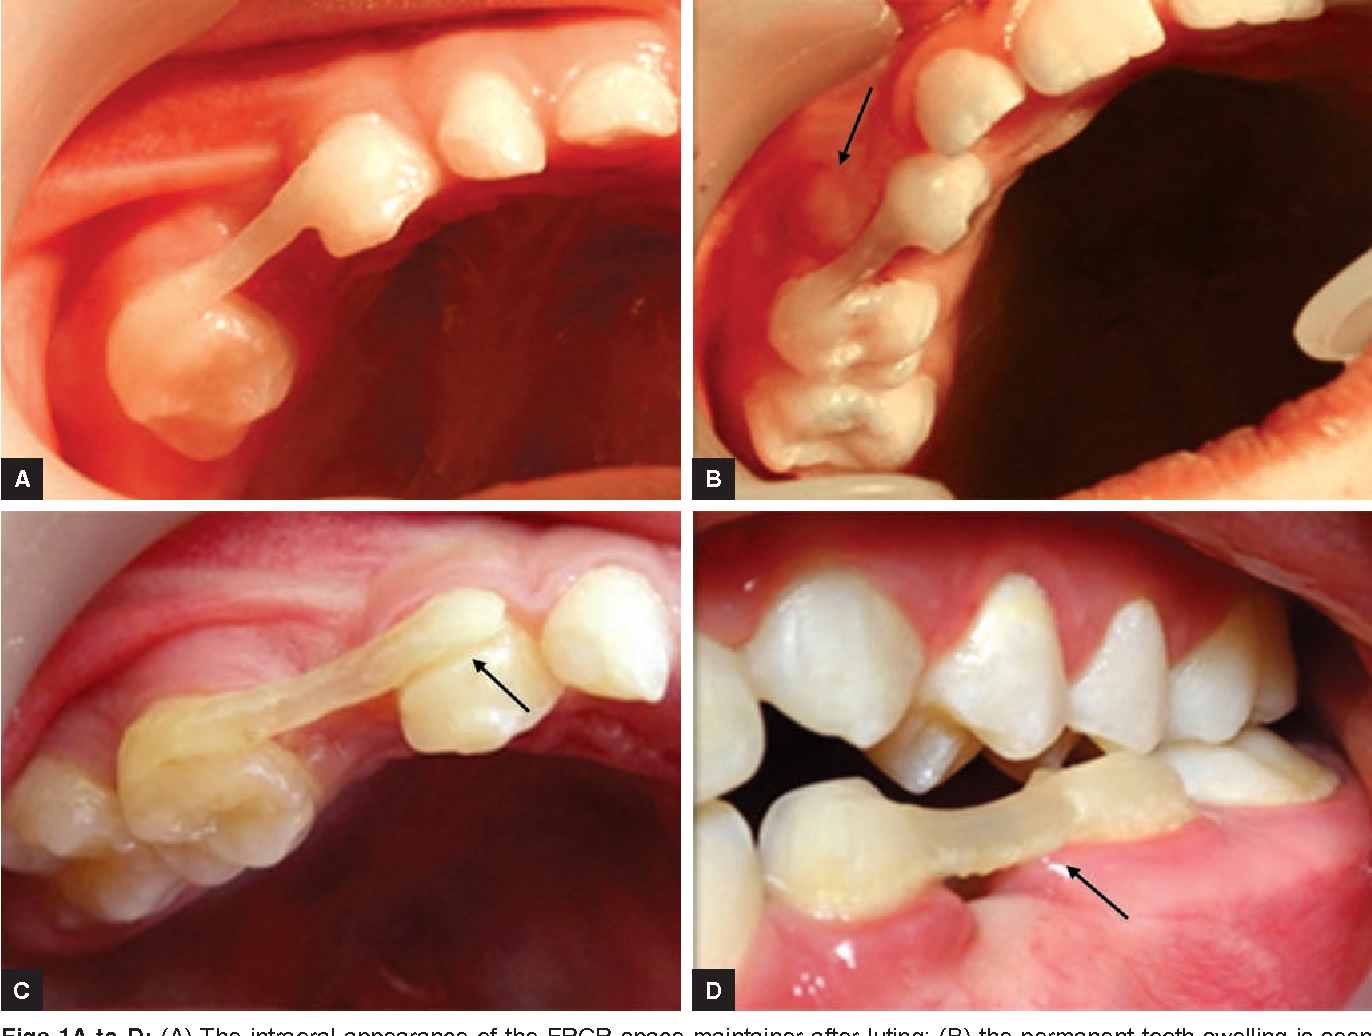 Figure 1 From Clinical Success Of Fiber Reinforced Composite Resin